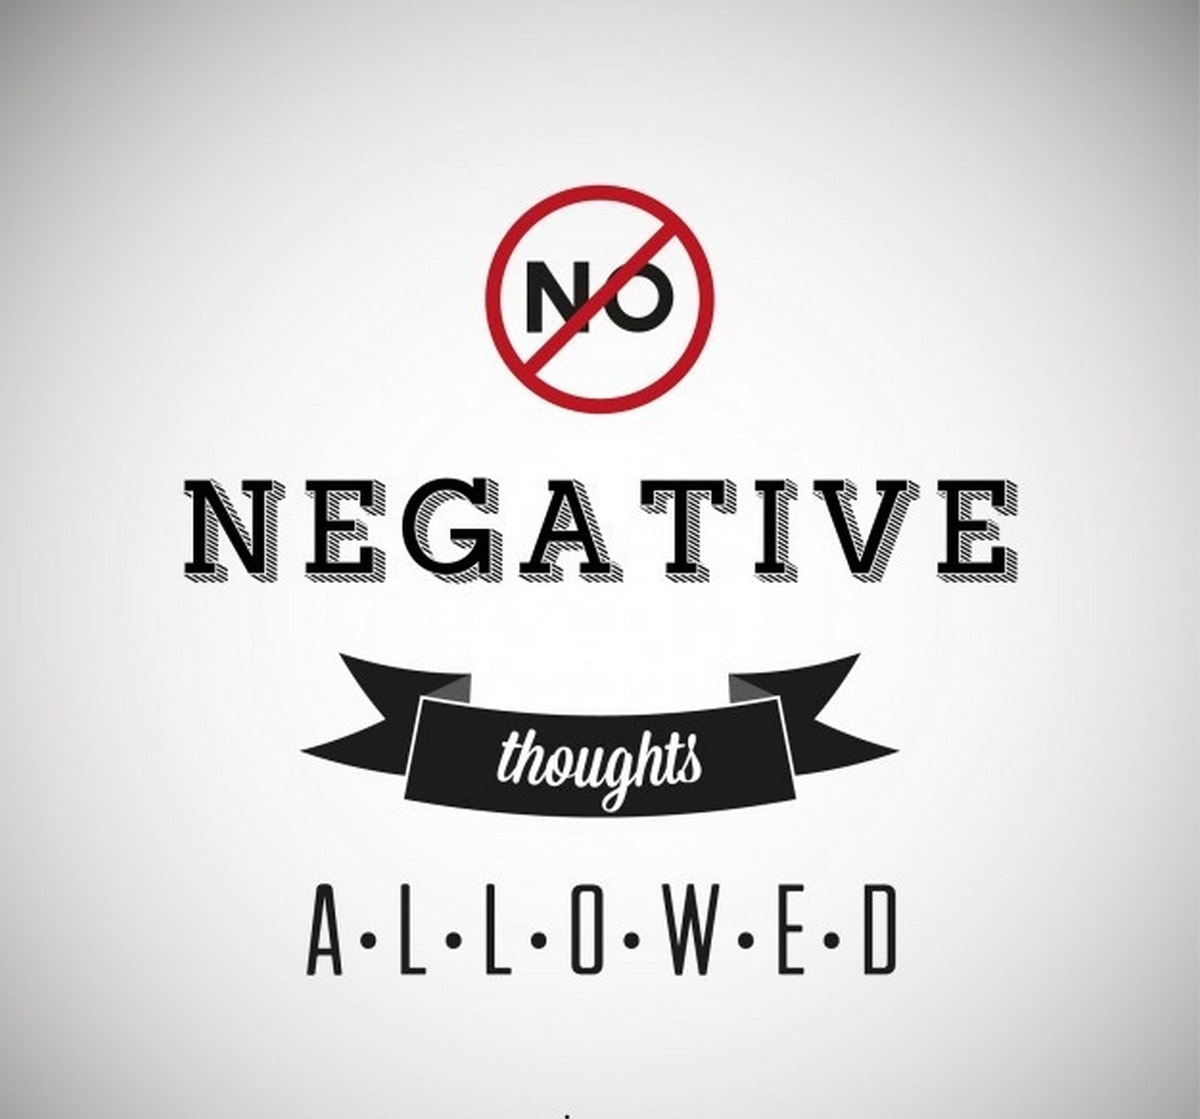 How To Avoid Negative Thoughts? 10 Tips to Avoid Negative Thoughts